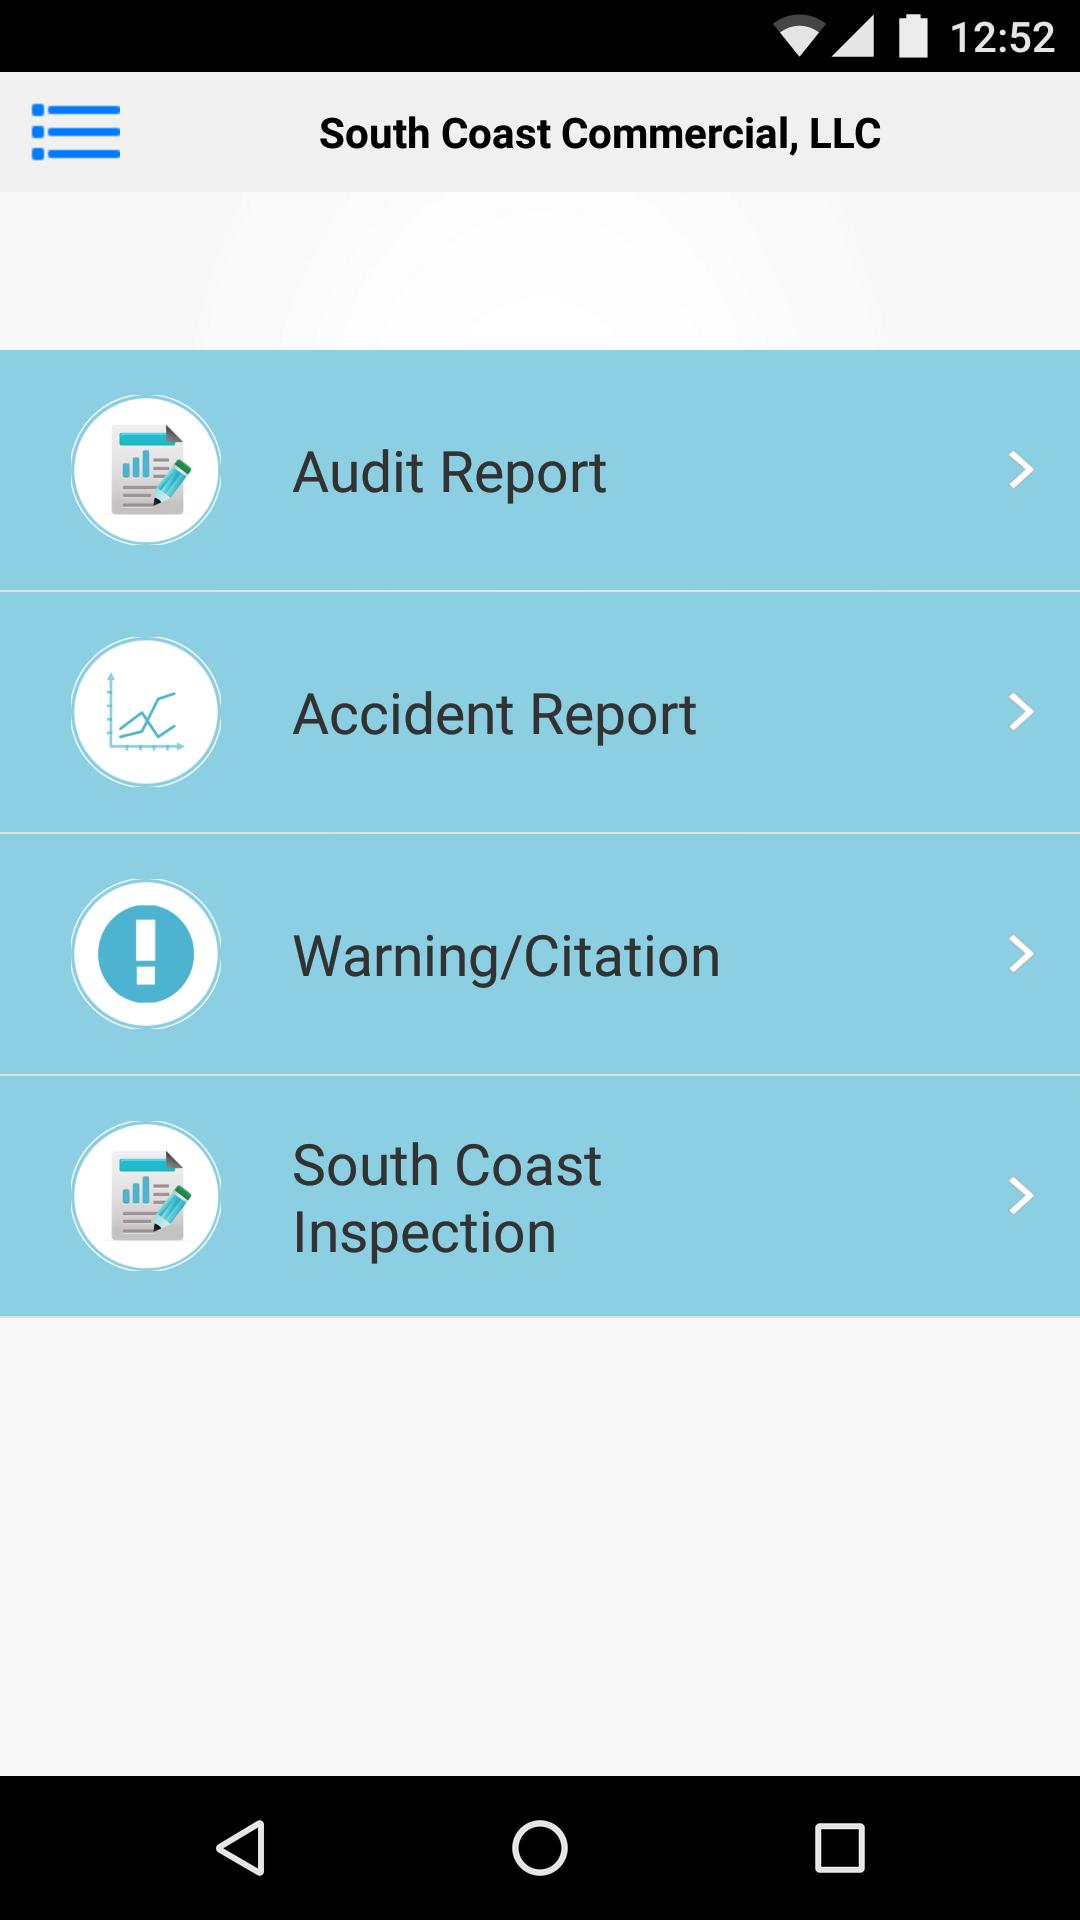 South Coast Commercial, LLC for Android - APK Download